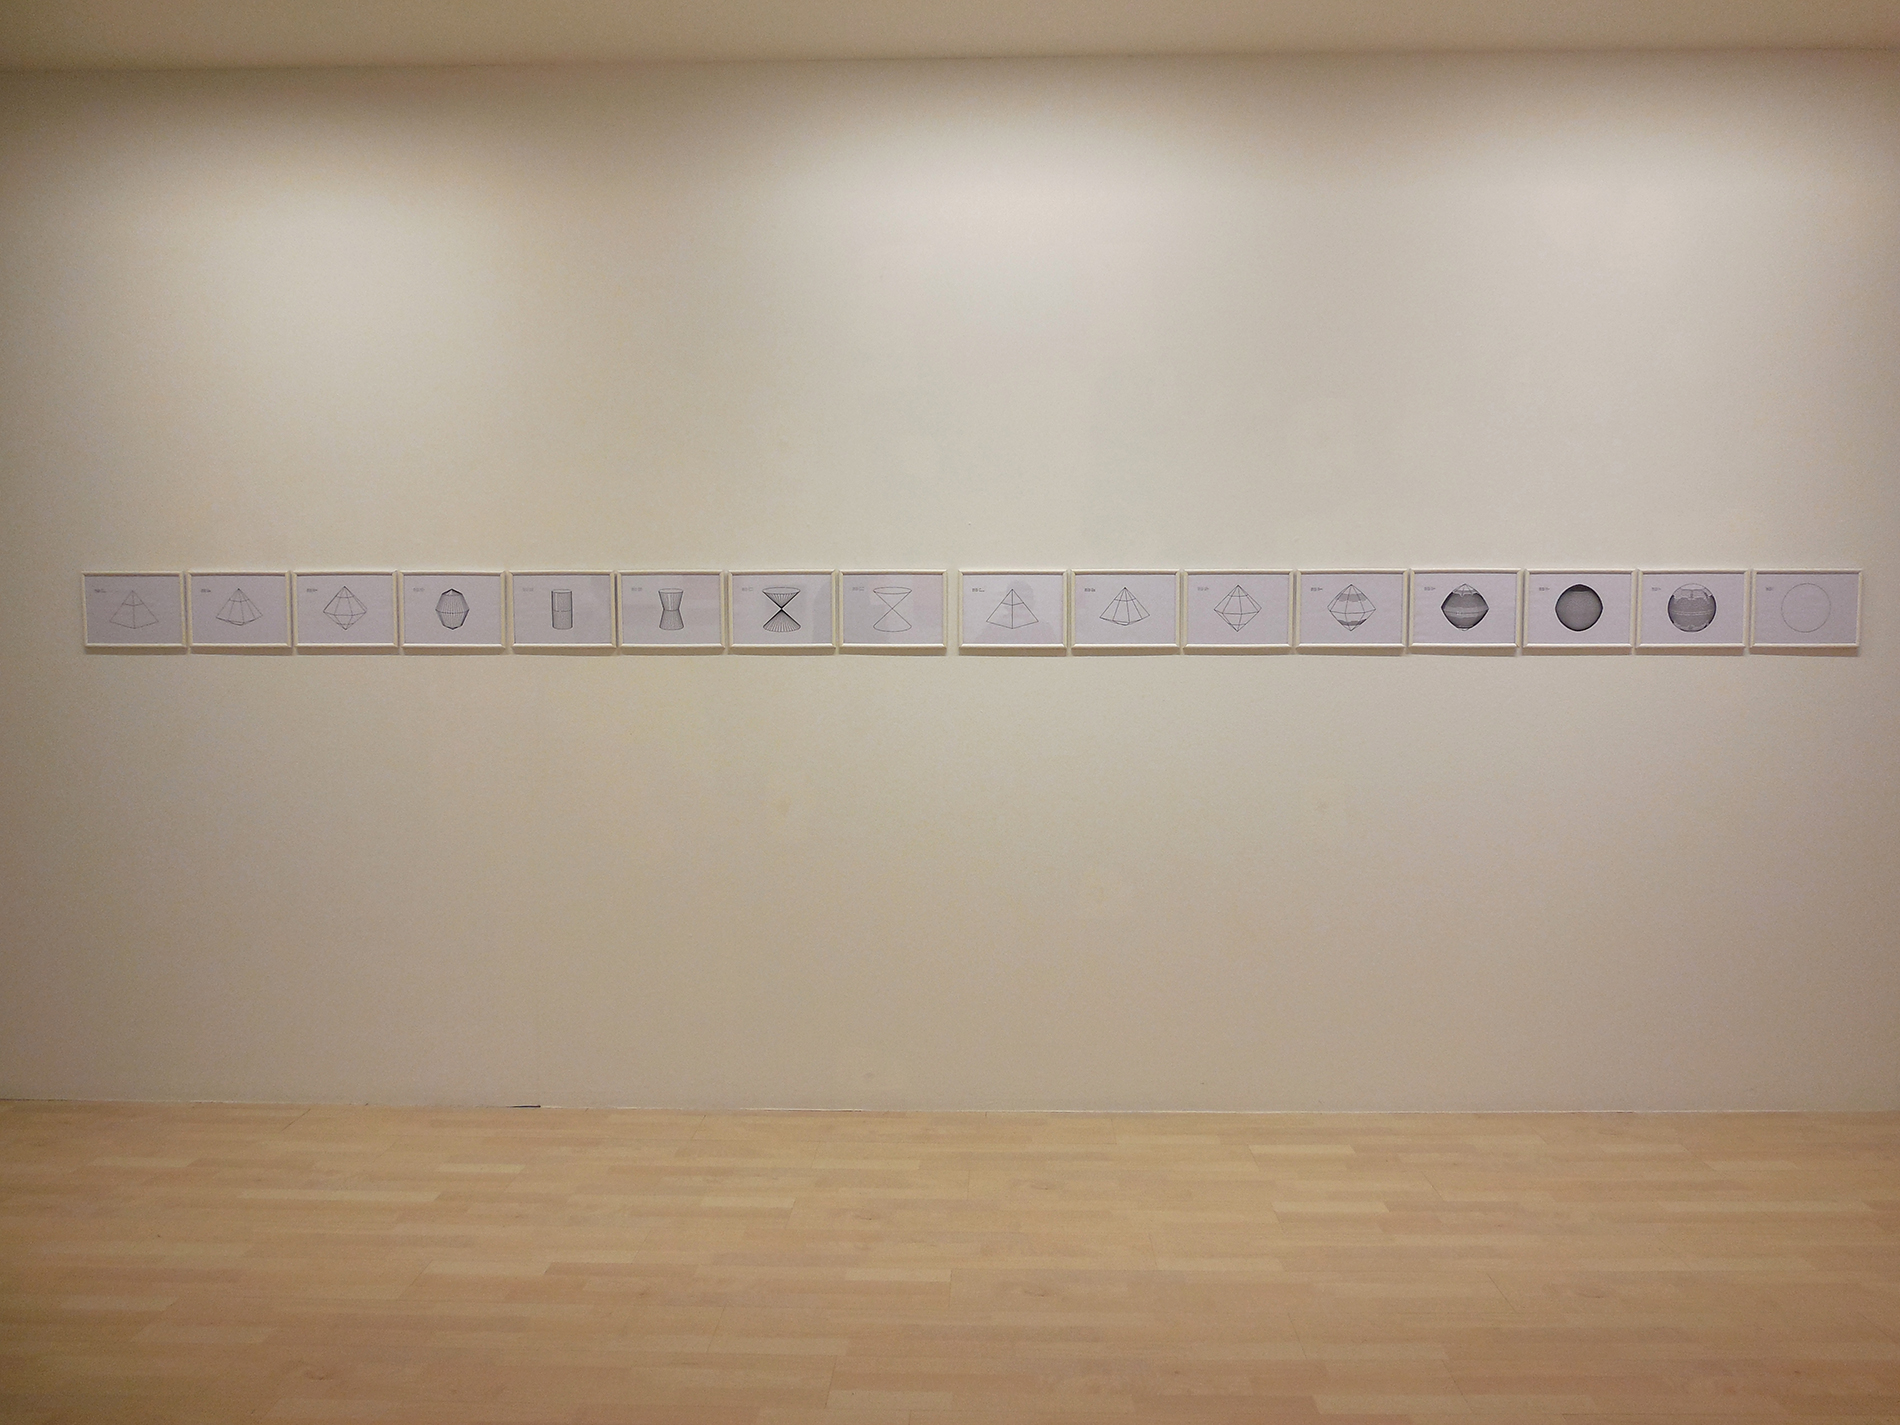 «Class Geometry», 2012, Framed prints, 21 x 500 cm, View of the installation at SAC, S/C de Tenerife, 2014